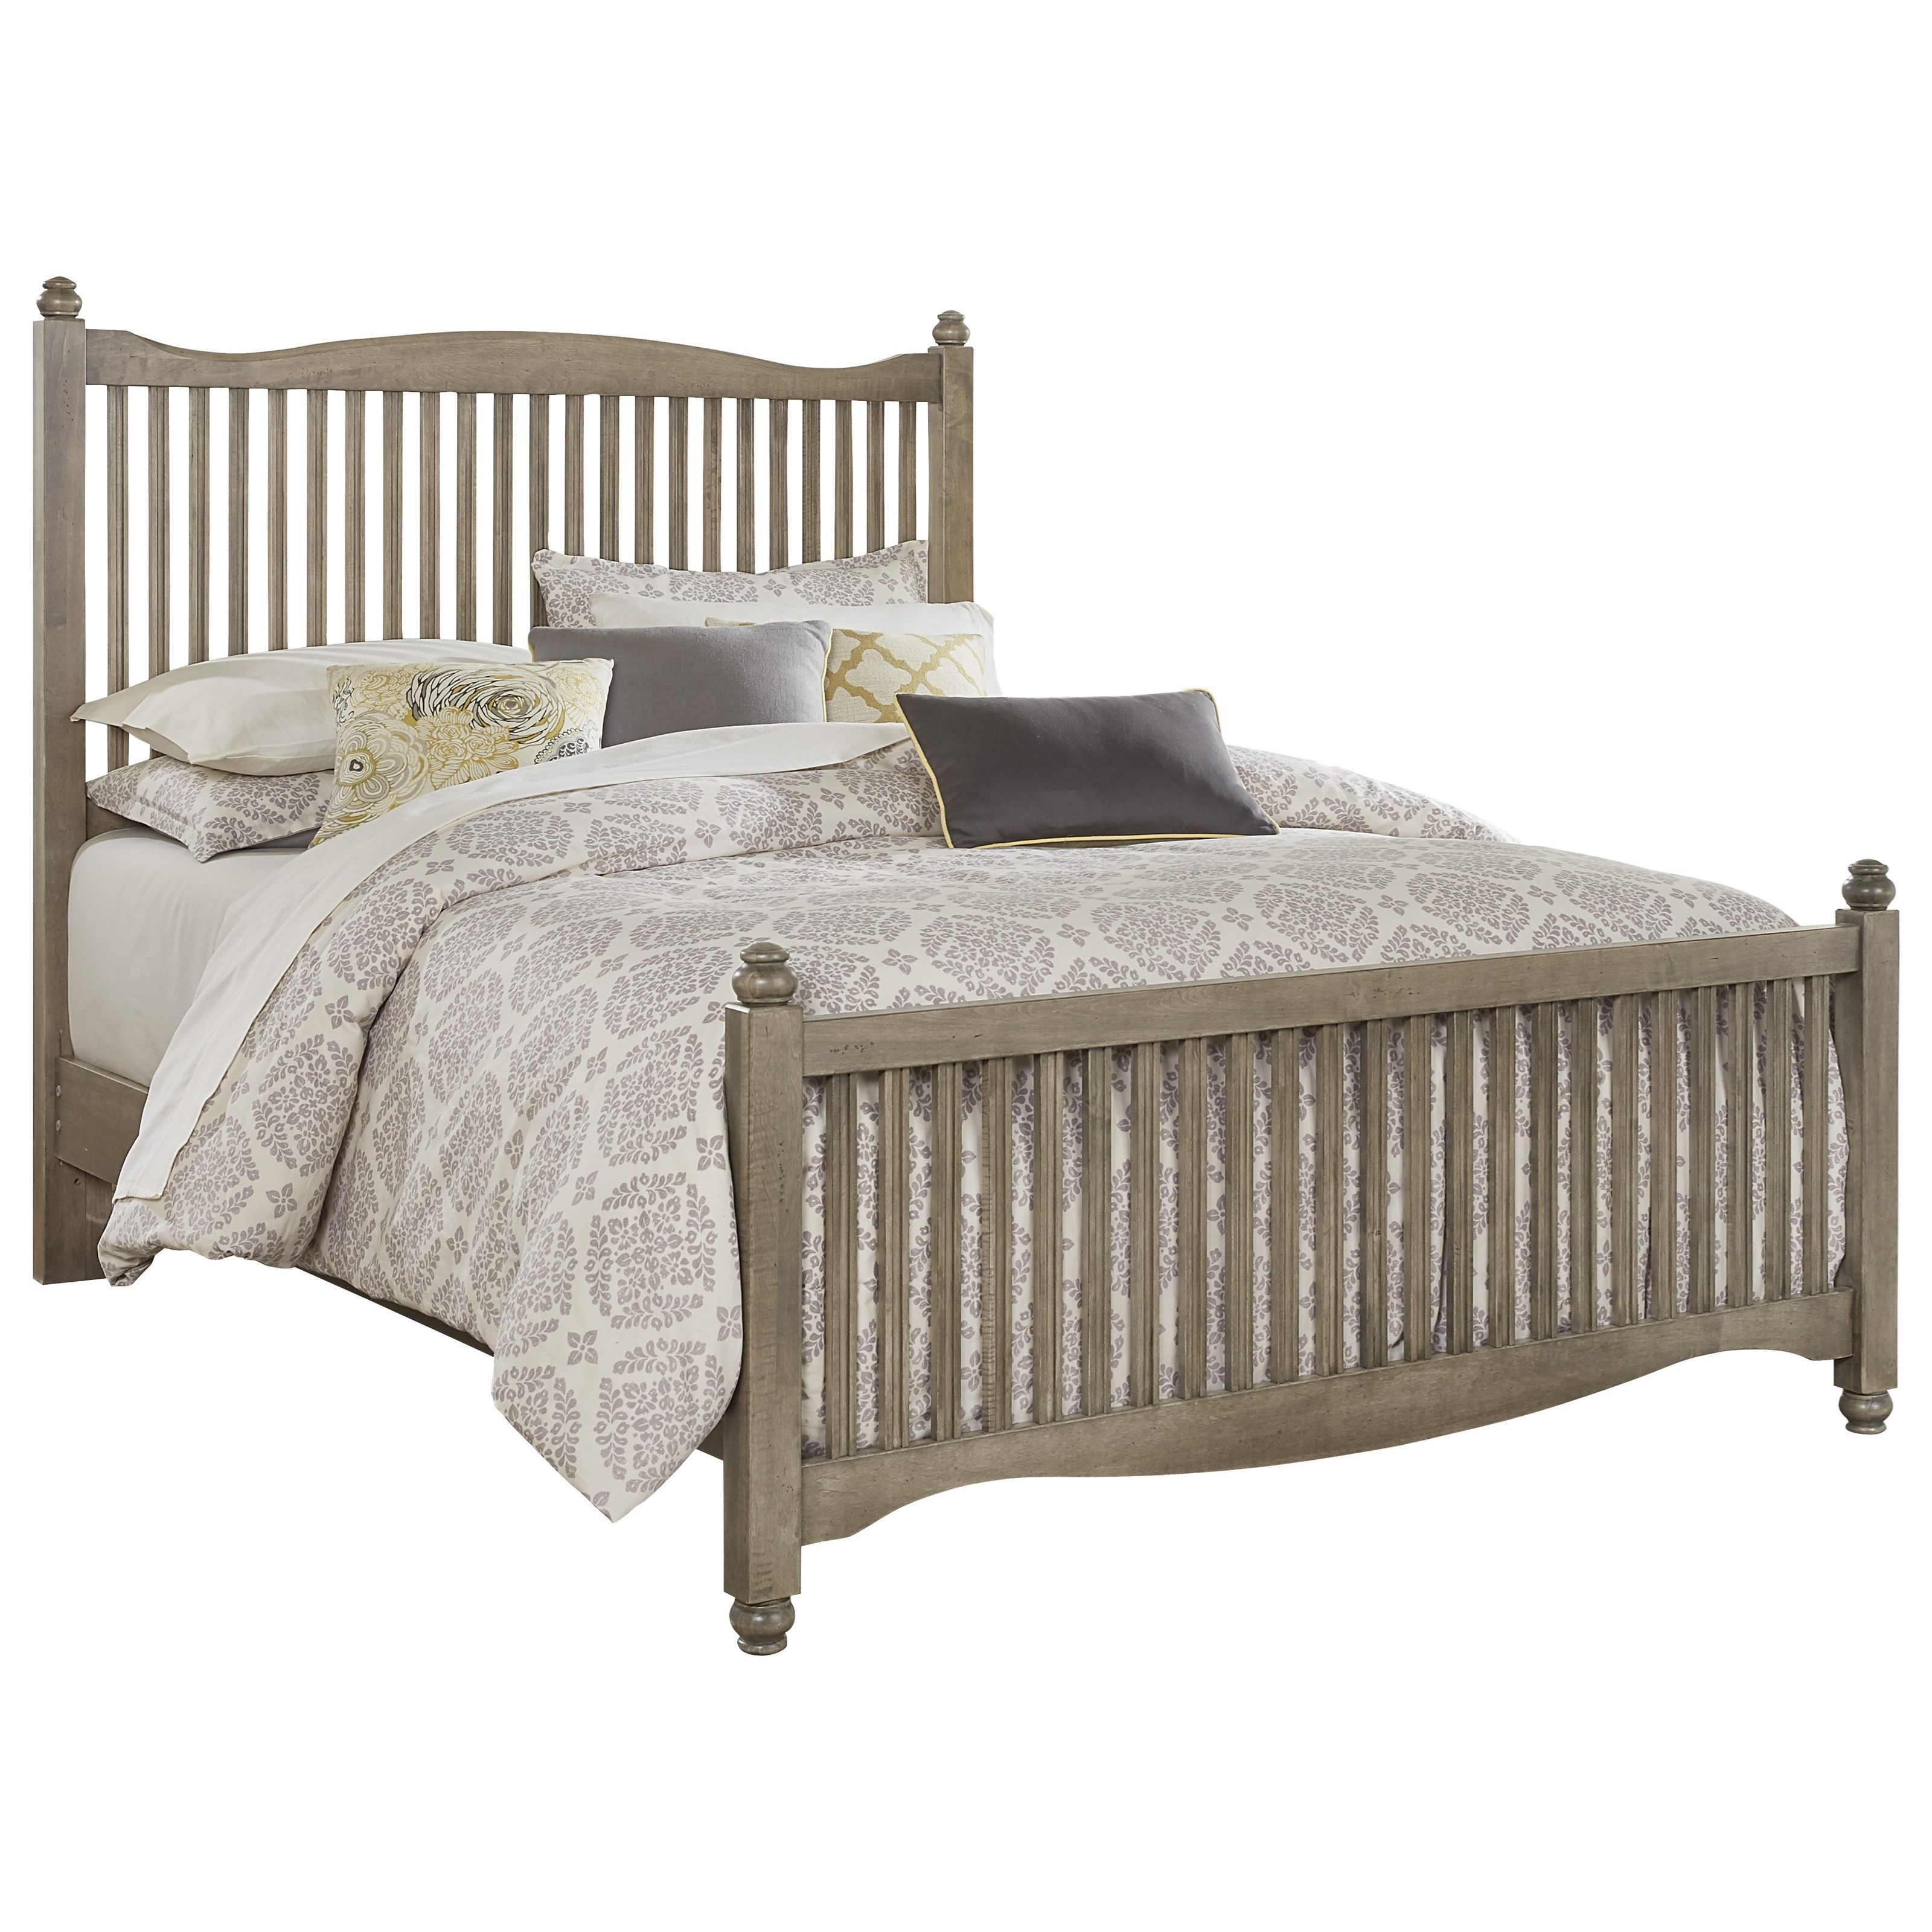 Vaughan Bassett American Maple Twin Slat Bed - Item Number: 401-377+773+900